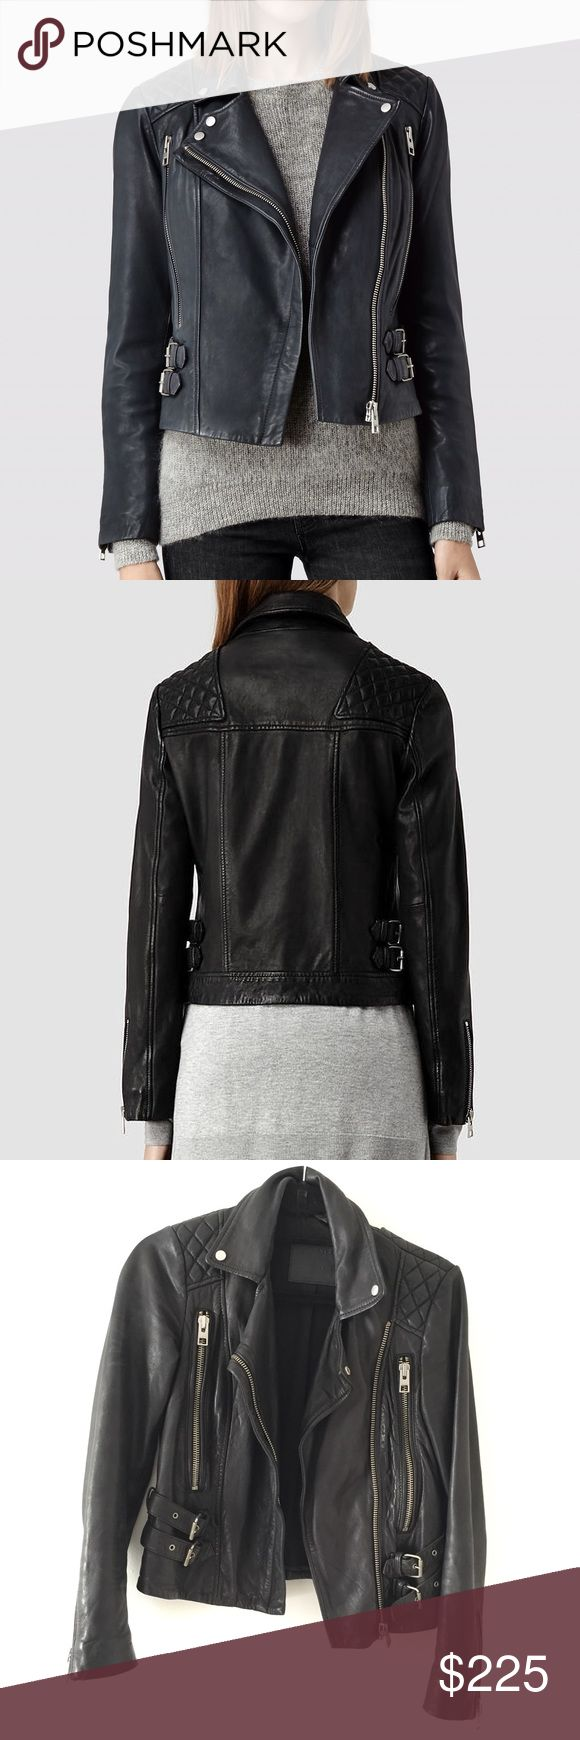 All Saints Hawk Rider Leather Jacket All Saints Hawk Rider leather jacket, size 0, black. Worn and broken in. Genuinely soft leather, heavy. Final sale, no trades. All Saints Jackets & Coats